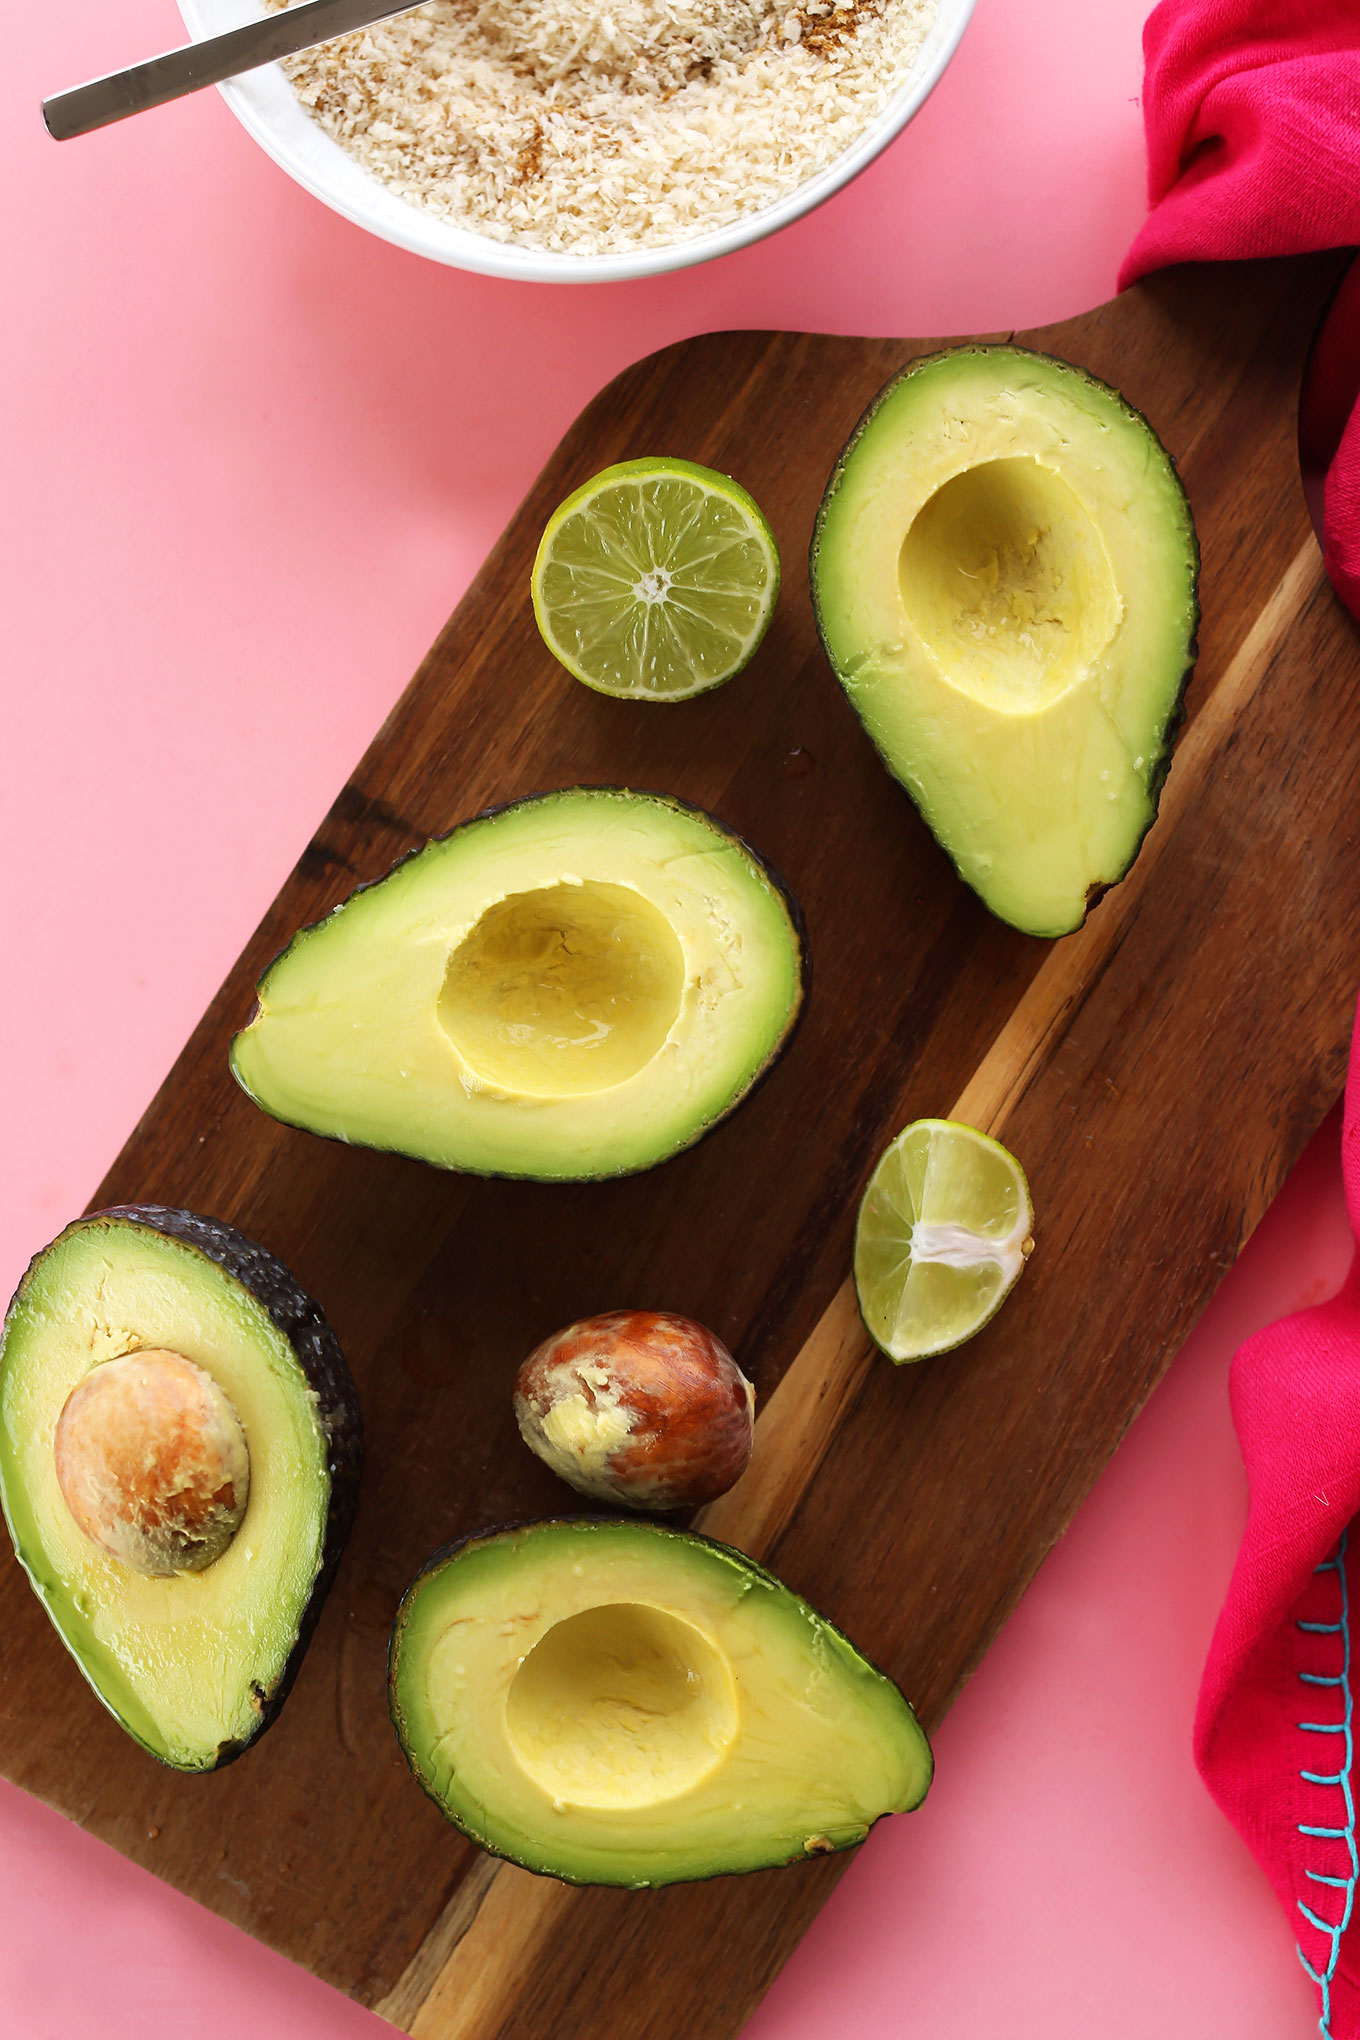 Cutting board with halved avocados and limes